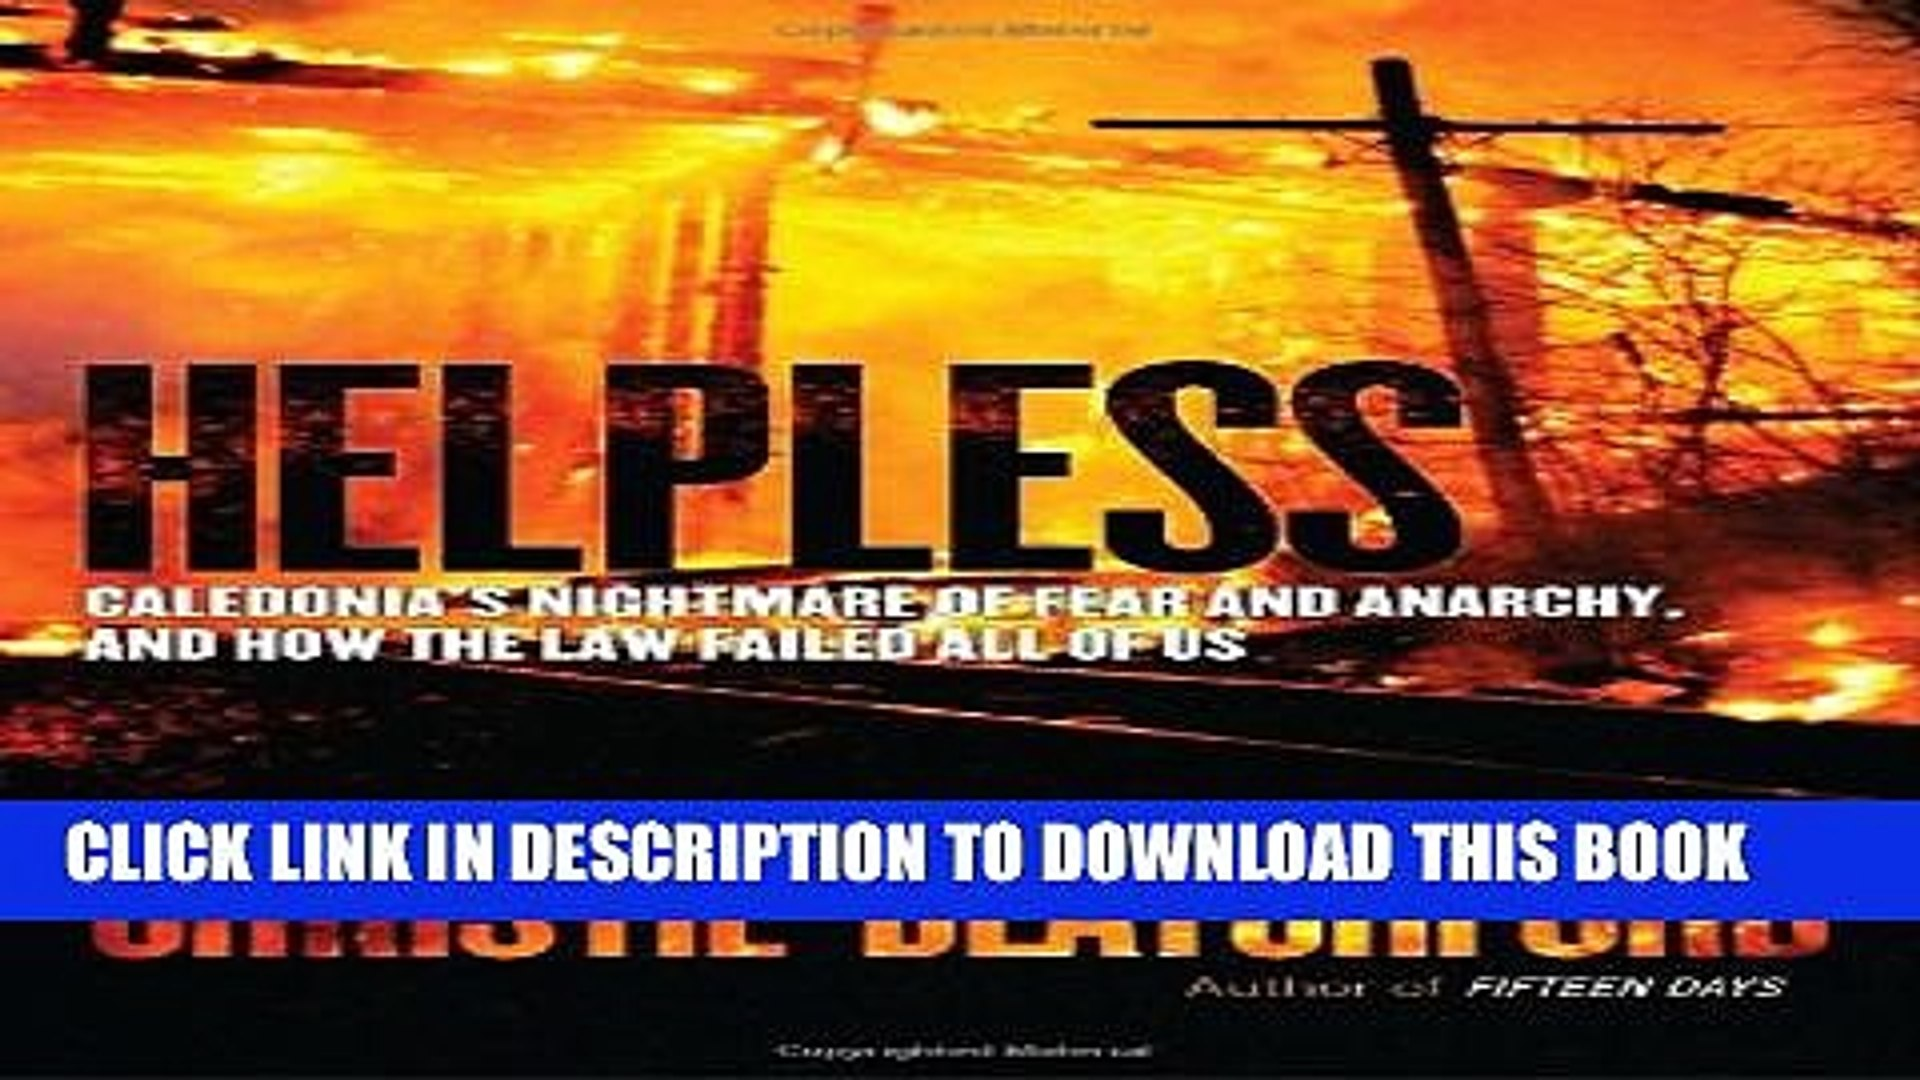 Helpless: Caledonias Nightmare of Fear and Anarchy, and How the Law Failed All of Us